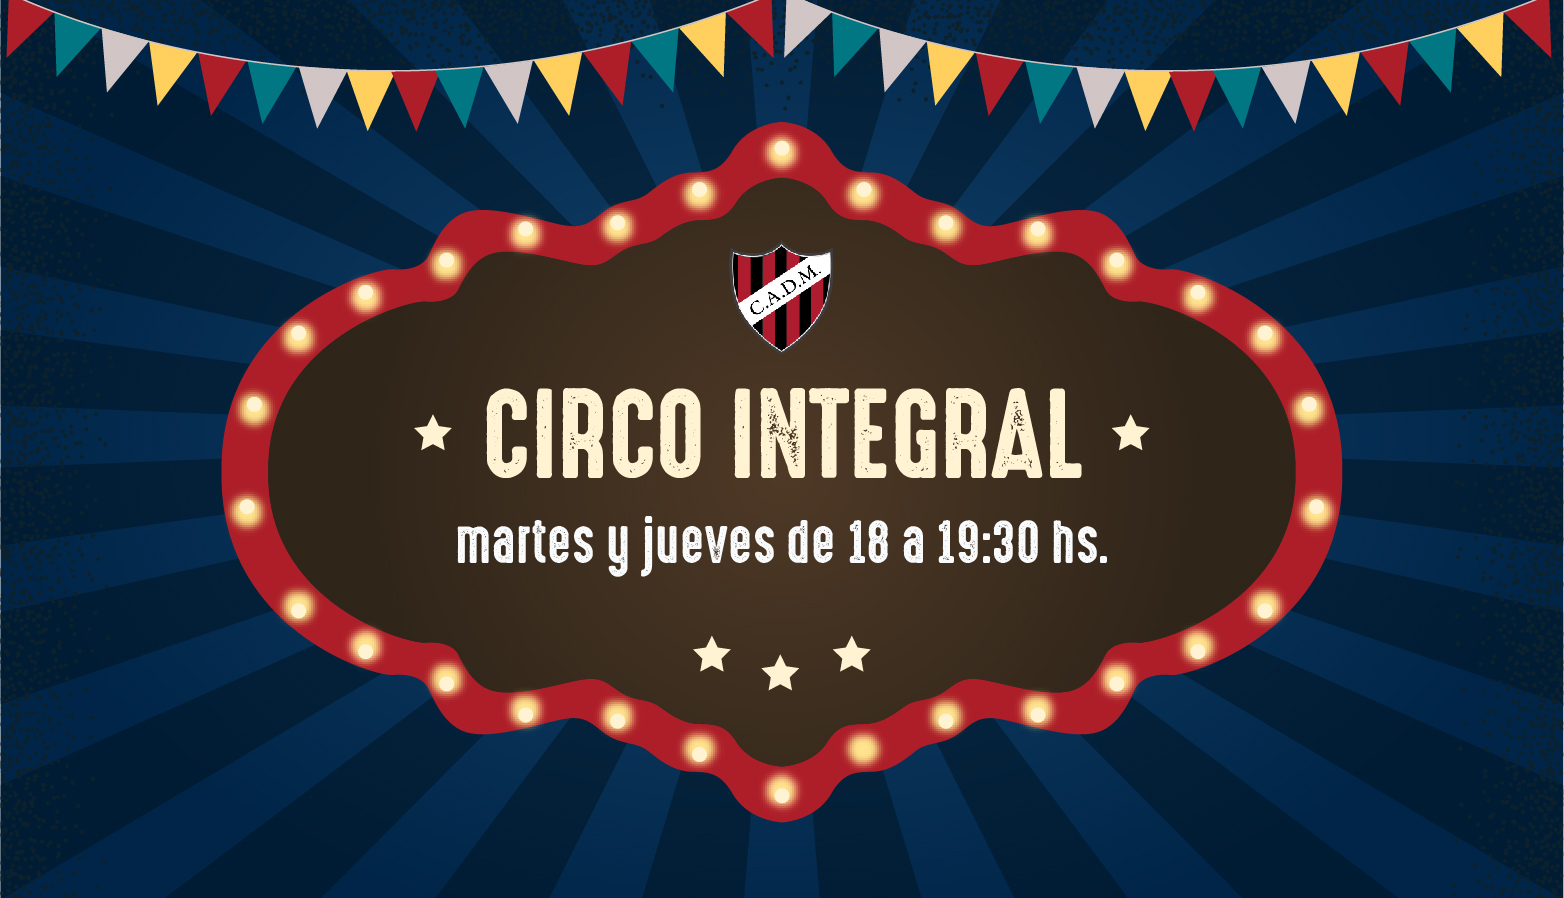 Circo Integral Defensores